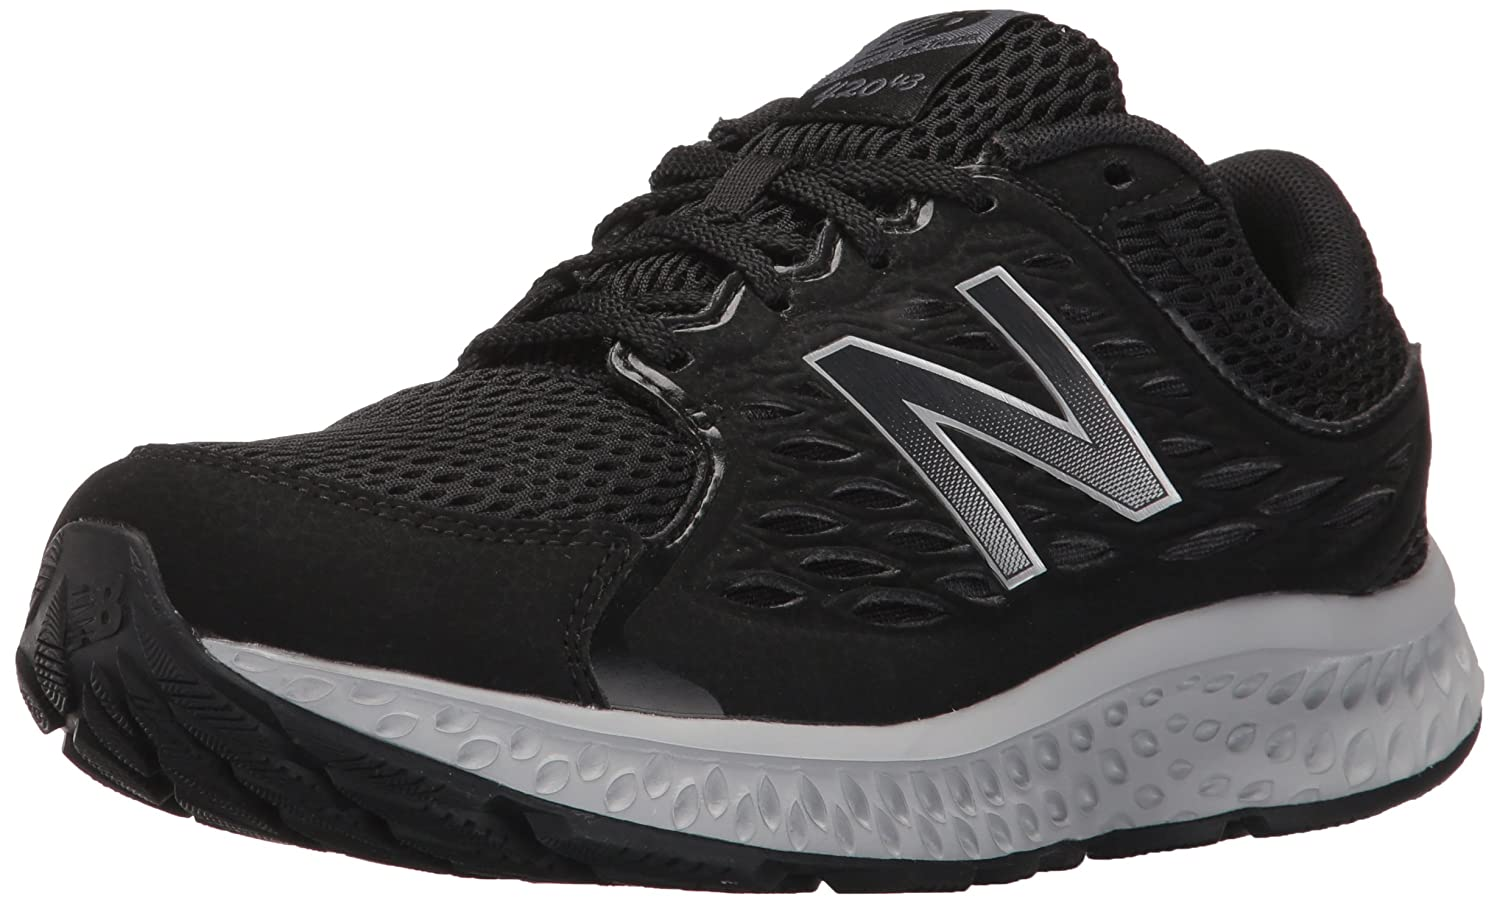 New Balance Women's US|Black/Silver W420v3 Running Shoe B01FSJ98HS 6.5 B(M) US|Black/Silver Women's Mink/Lime Glow 32c511